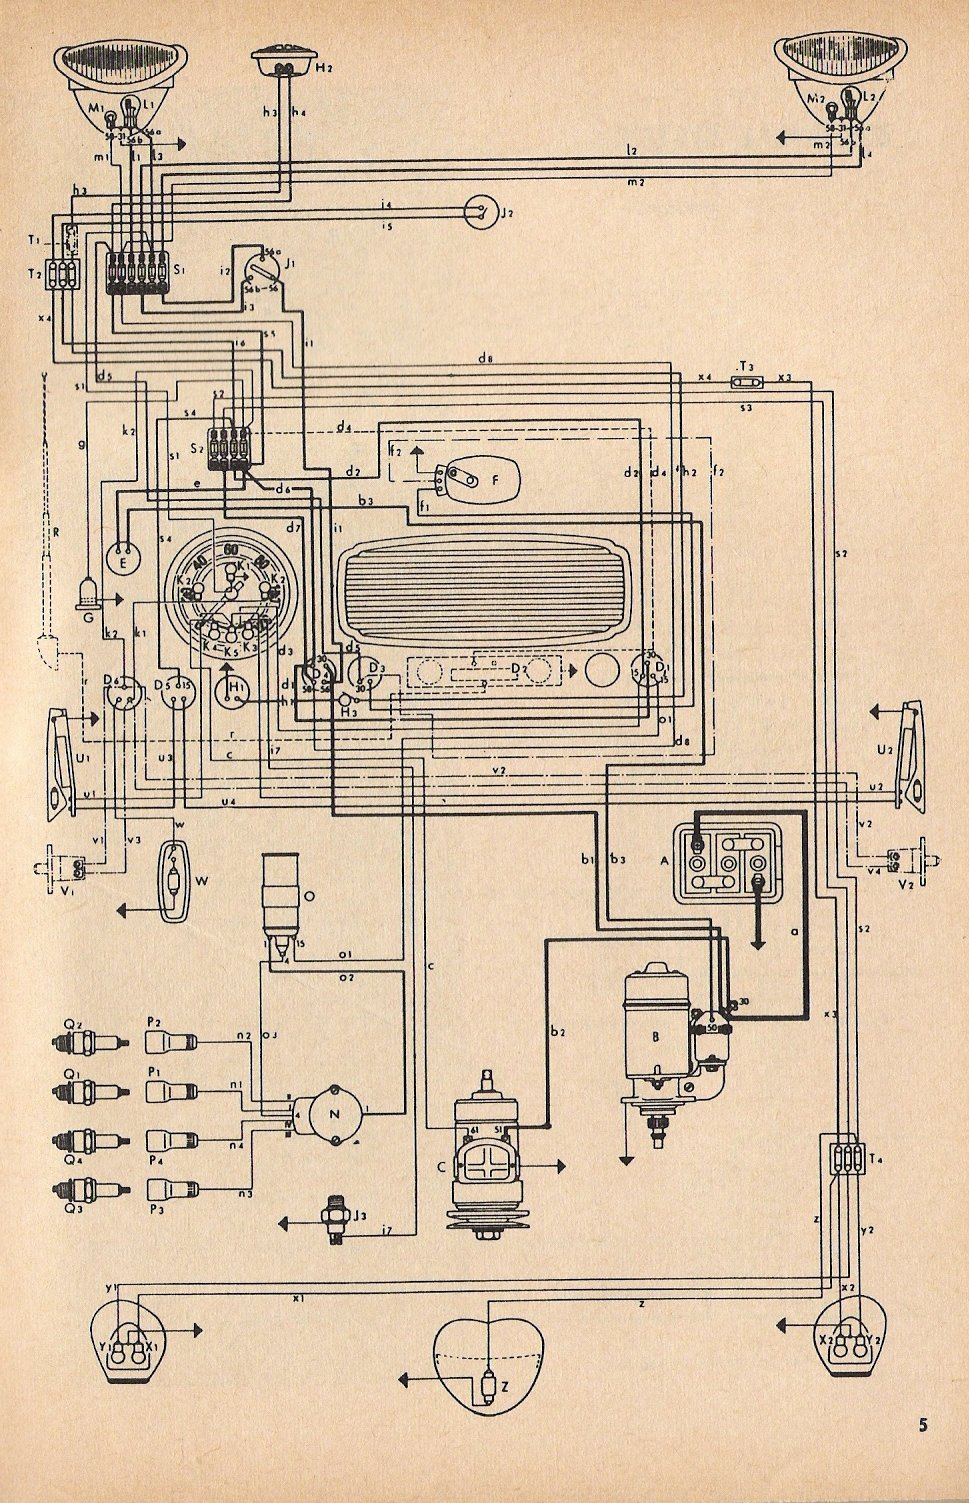 wiring diagram for 1971 mustang convertible schematic diagram 66 Mustang Brake Diagram 1971 vw bug ignition wiring edn bbzbrighton uk \\u2022 73 mustang wiring diagram 1971 mustang convertible top wiring diagram 1971 mustang 1971 vw beetle